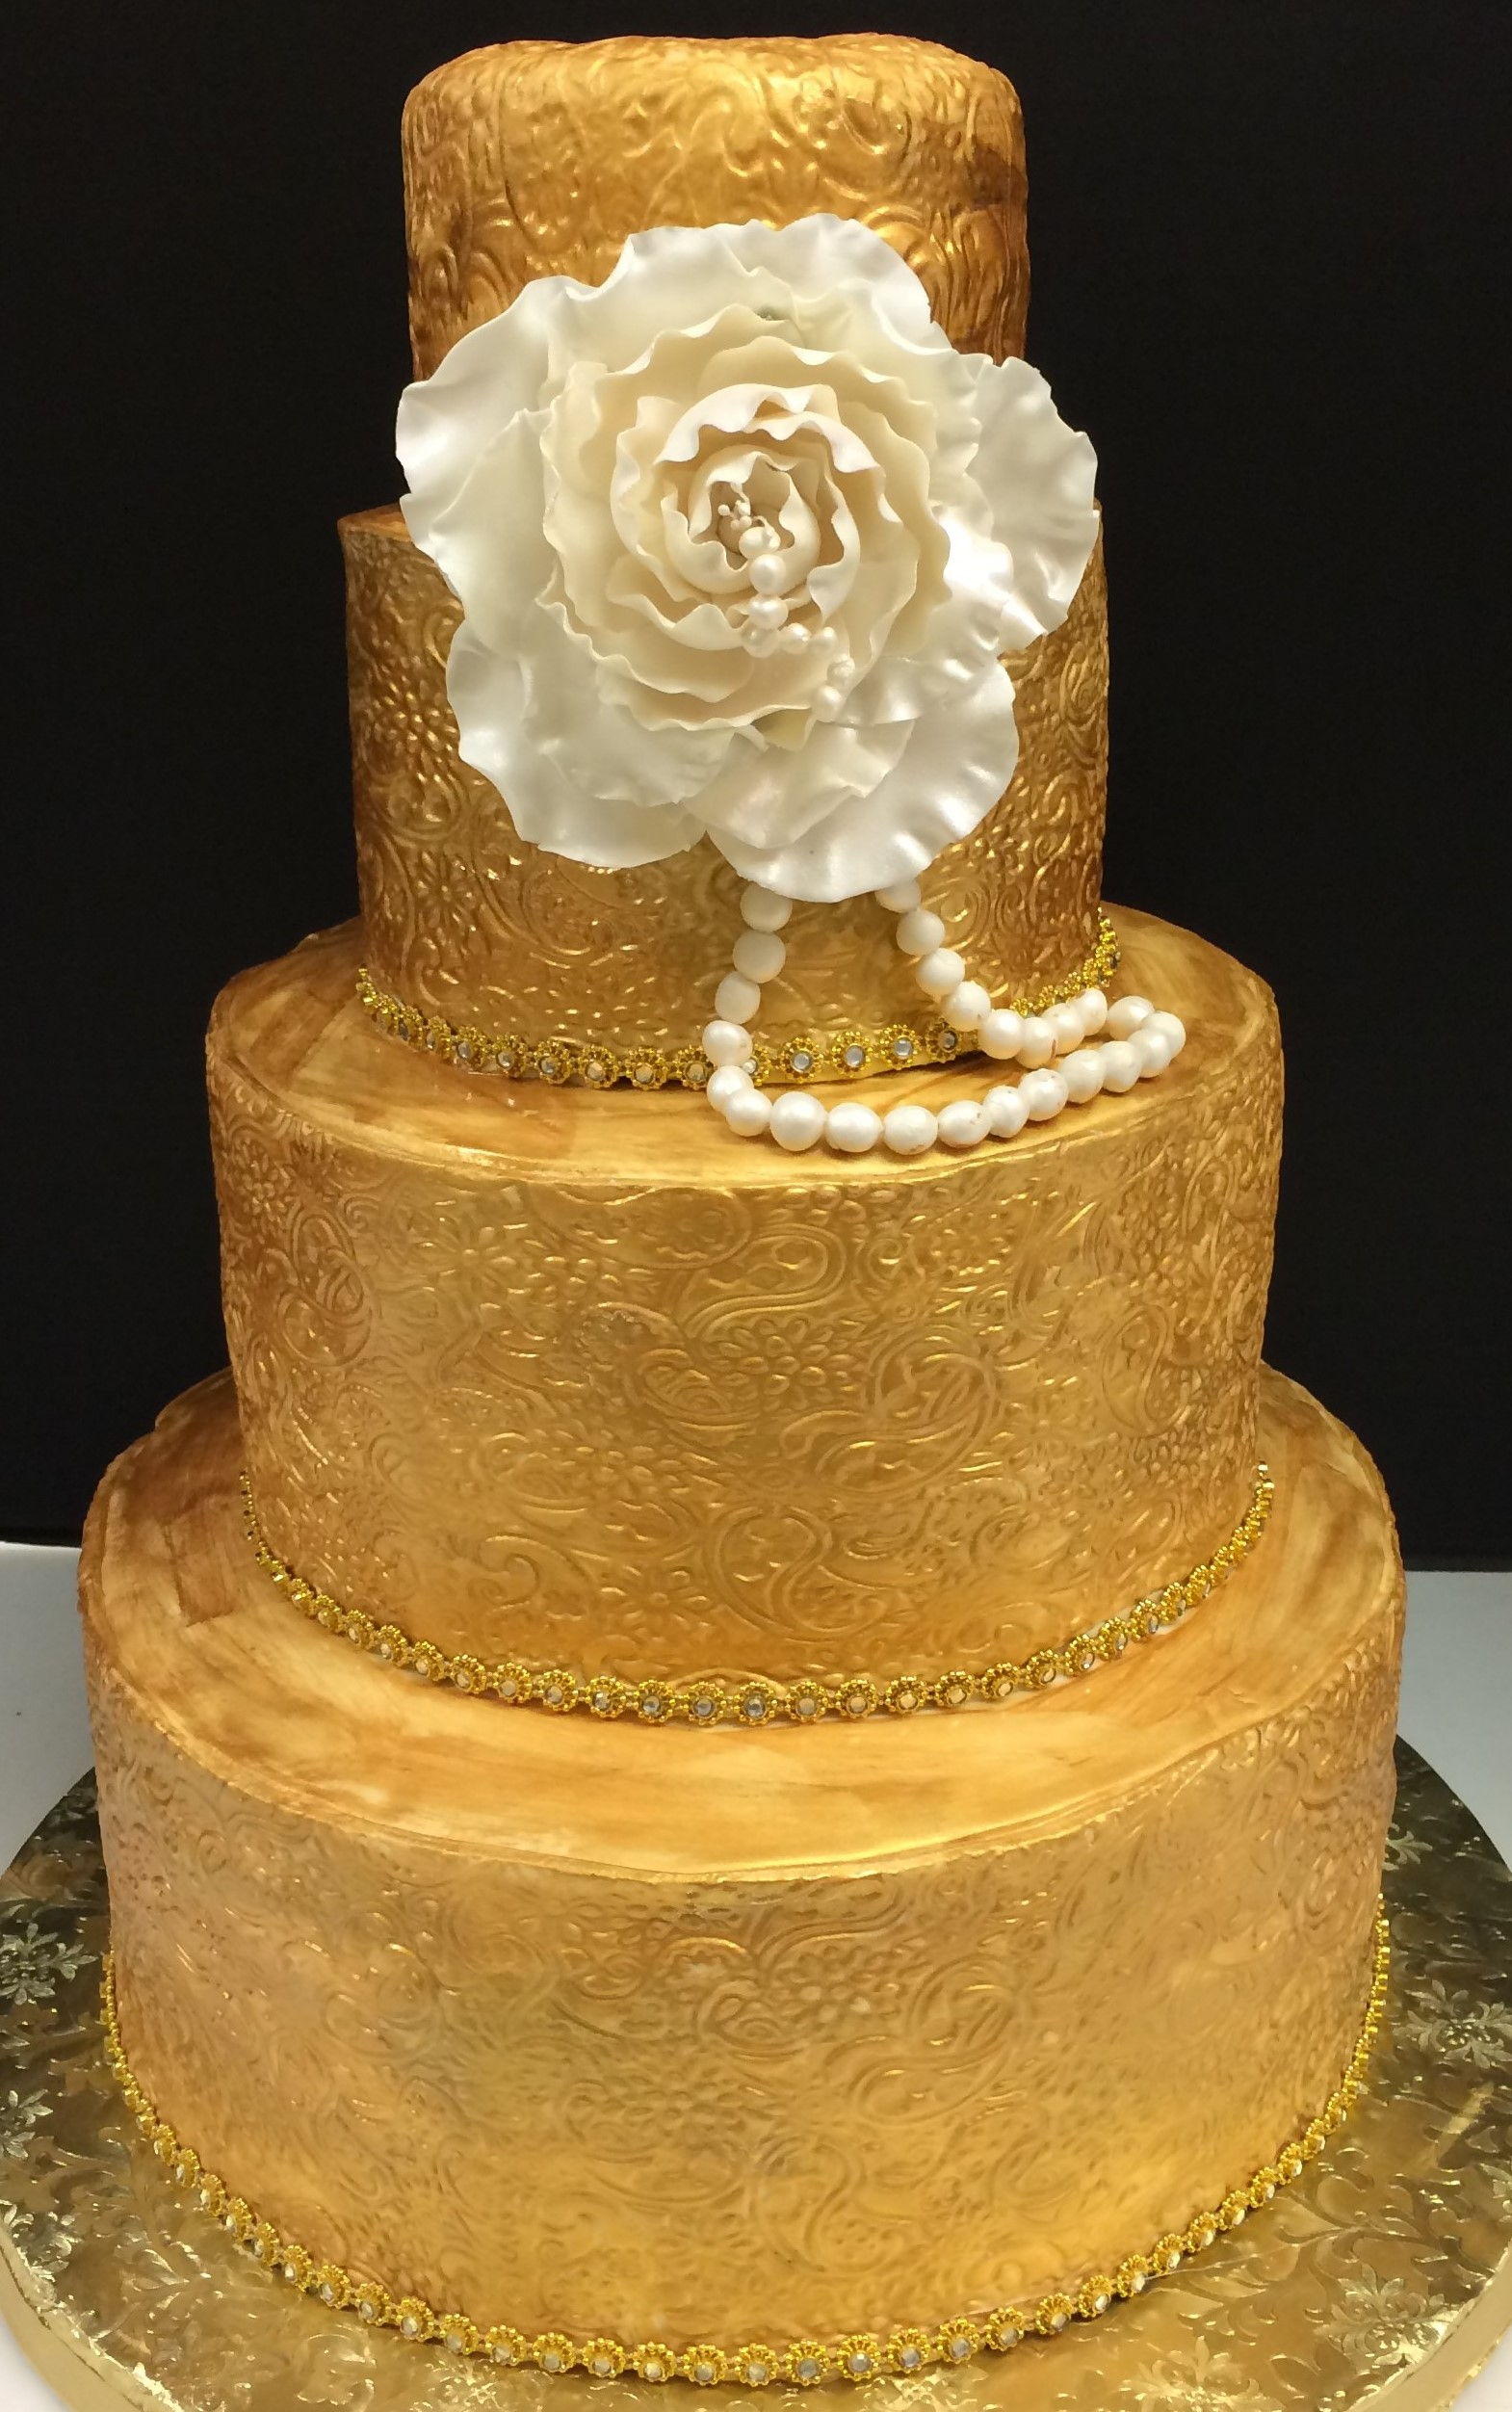 Cakes By Lara We Are A Unique Bakery Specializing In All Types Of